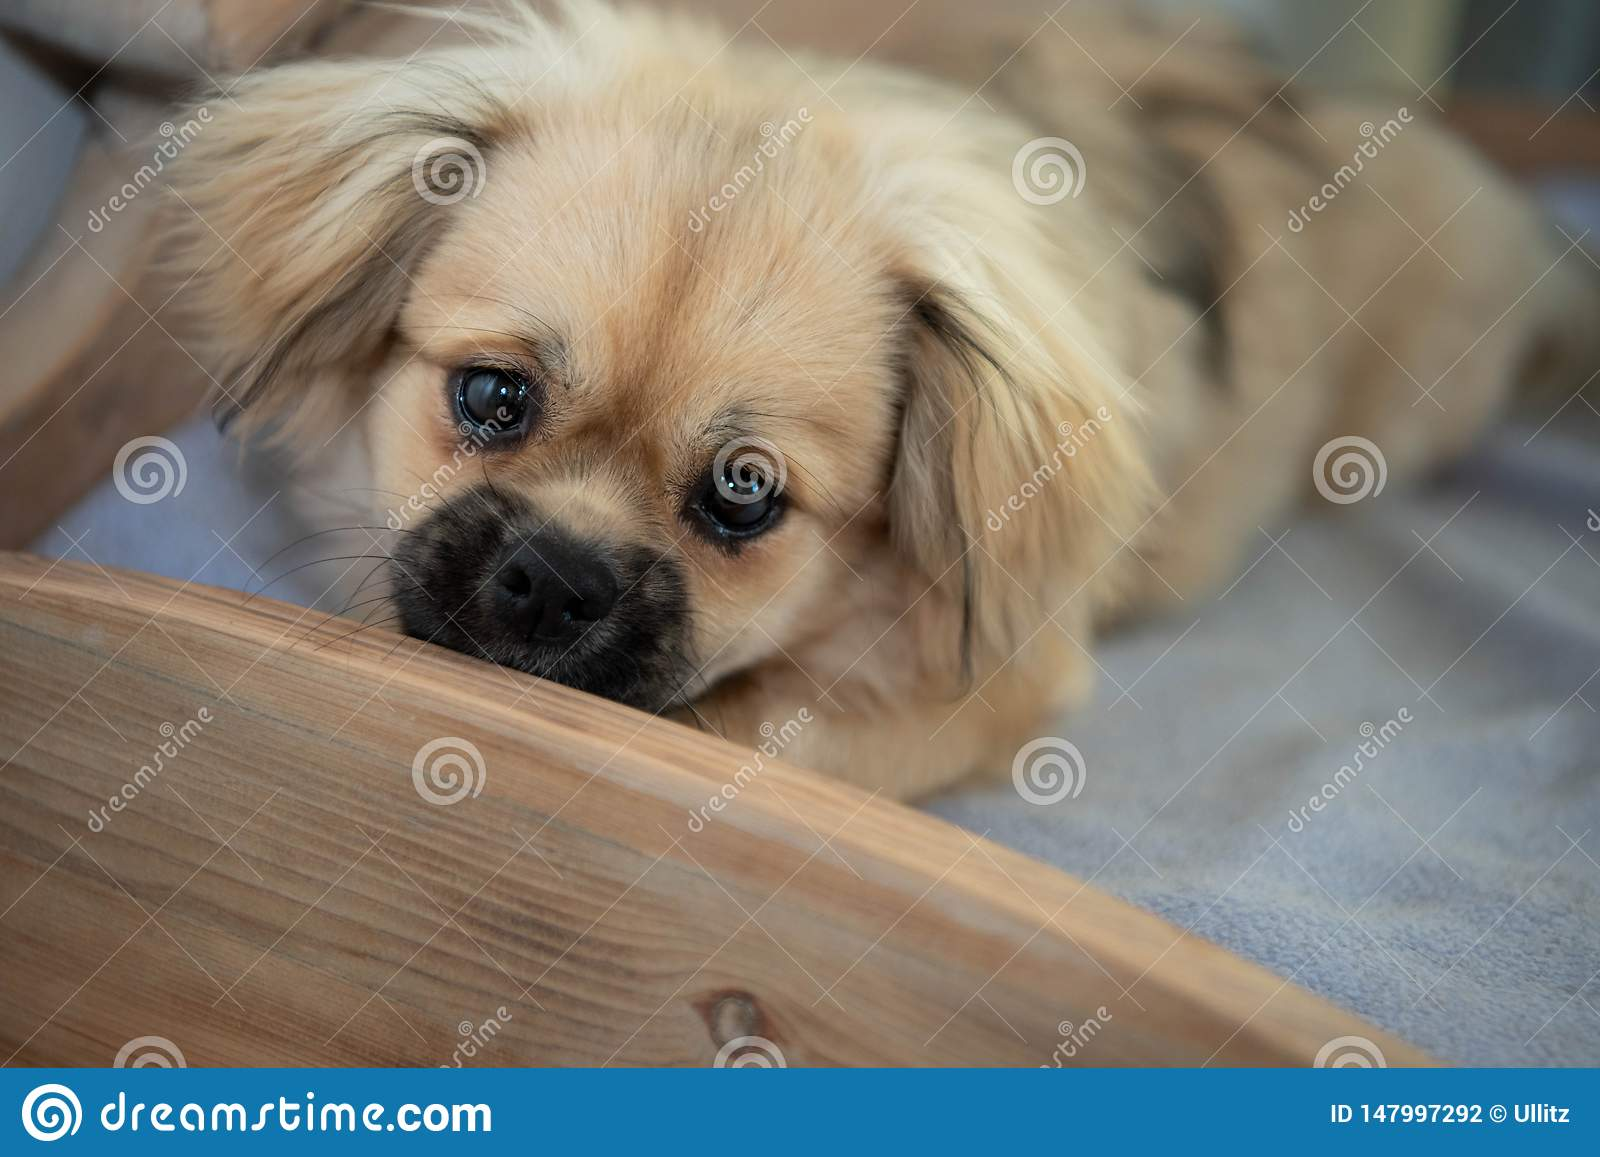 Young Sabel Tibetan Spaniel Puppy Laying In A Wooden Homemade Dog Bed With Big Puppy Eyes Stock Photo Image Of Part Spaniel 147997292